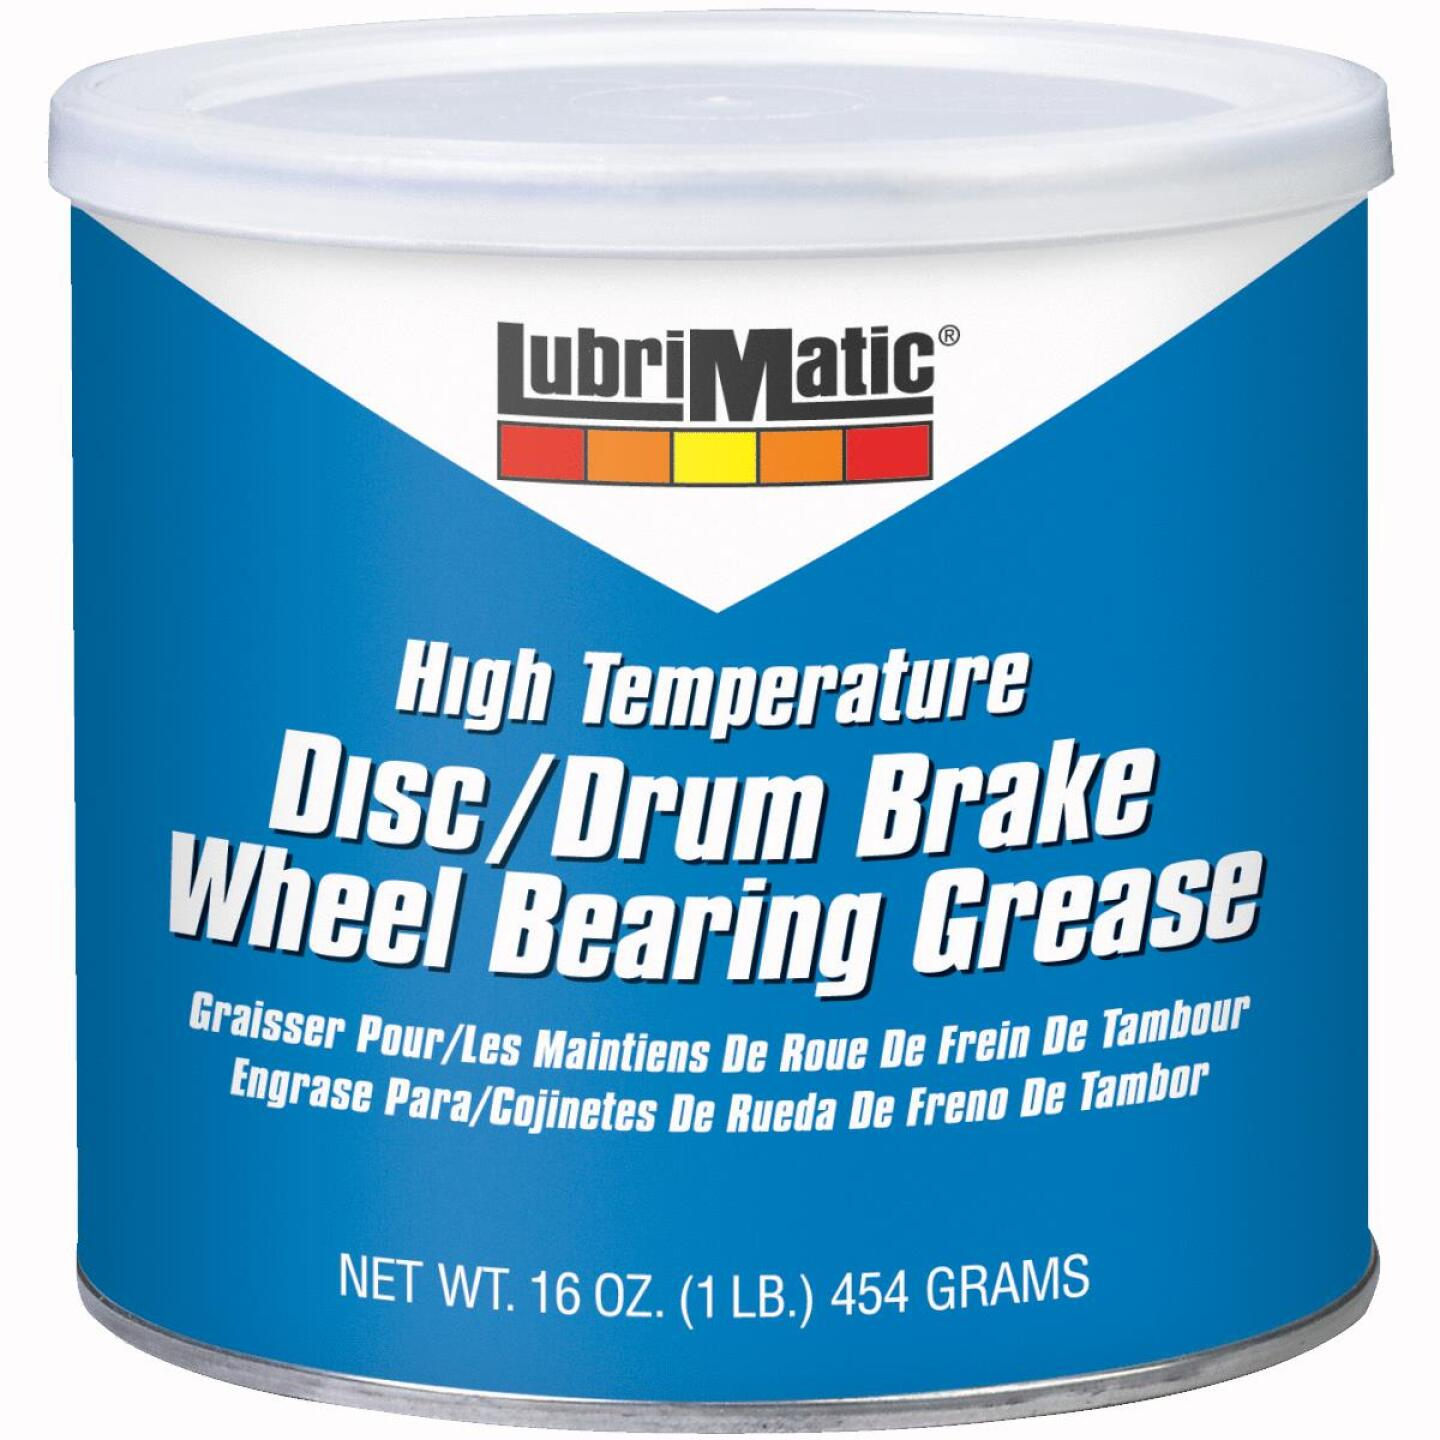 LubriMatic 1 Lb. Can Disc & Drum Brake, High-Temperature Wheel Bearing Grease Image 1